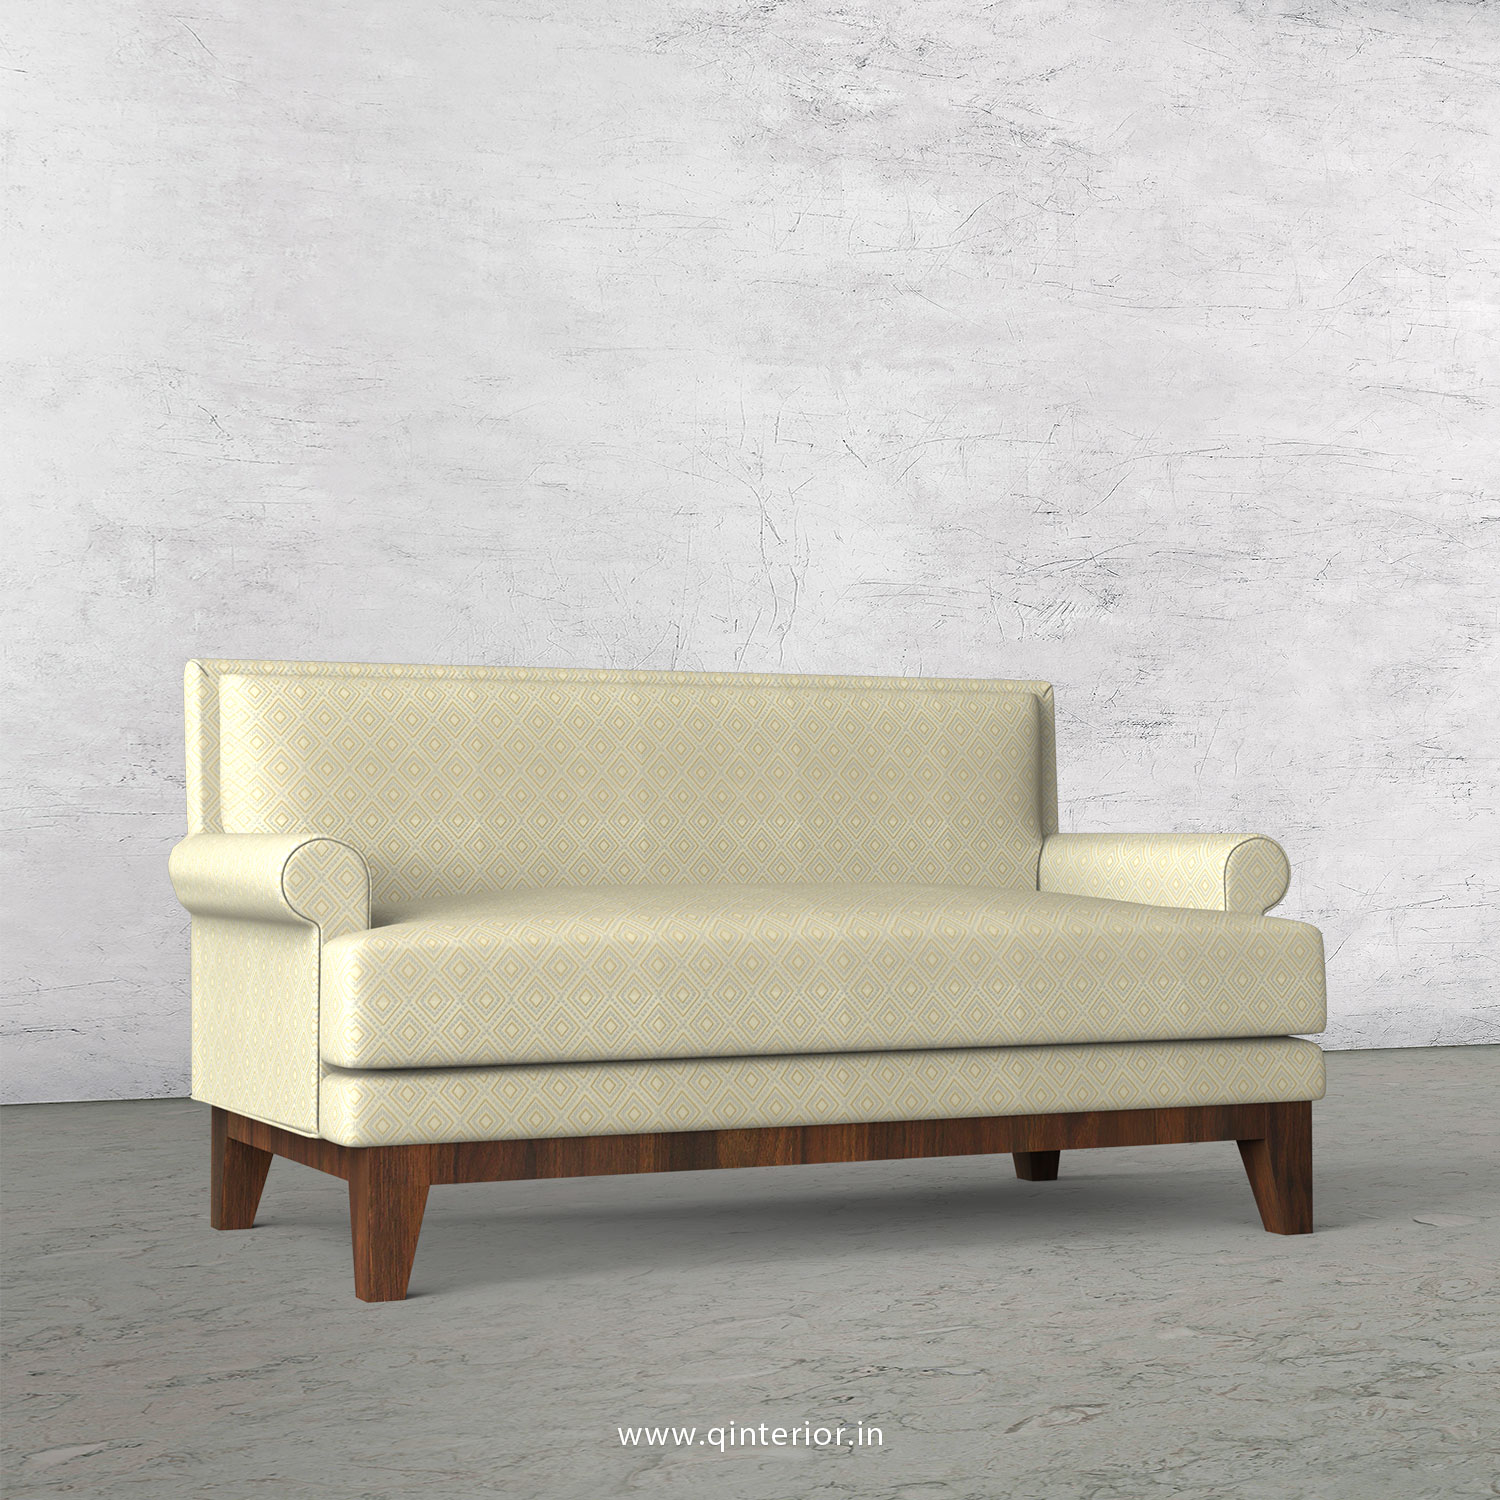 Aviana 2 Seater Sofa in Jacquard - SFA001 JQ35